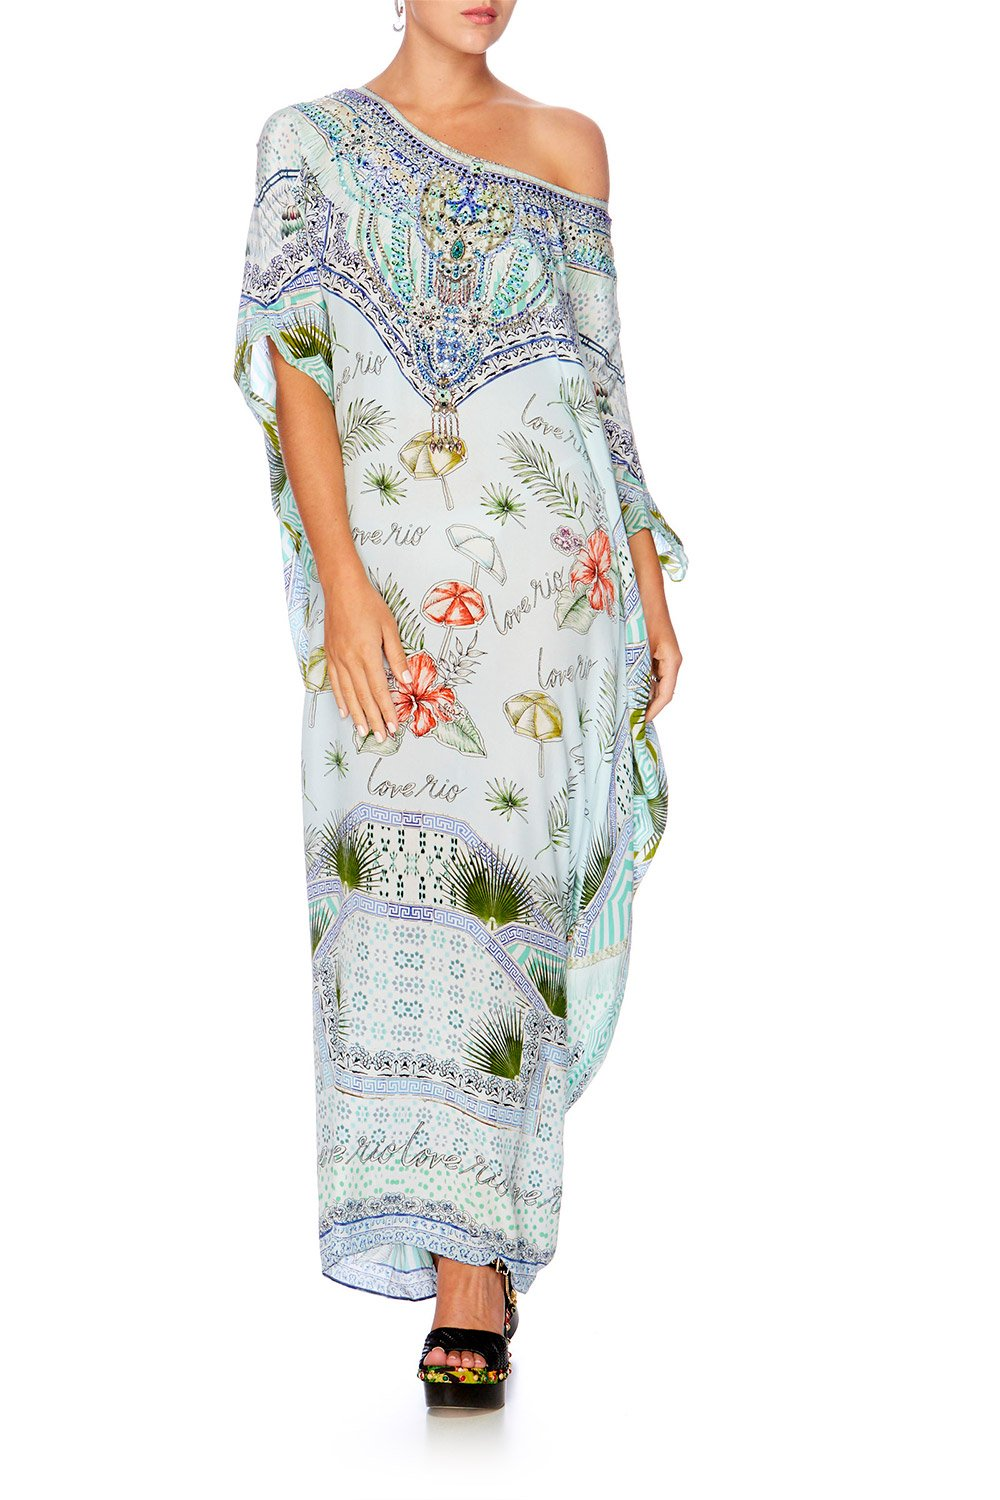 SHADES OF RIO ROUND NECK KAFTAN